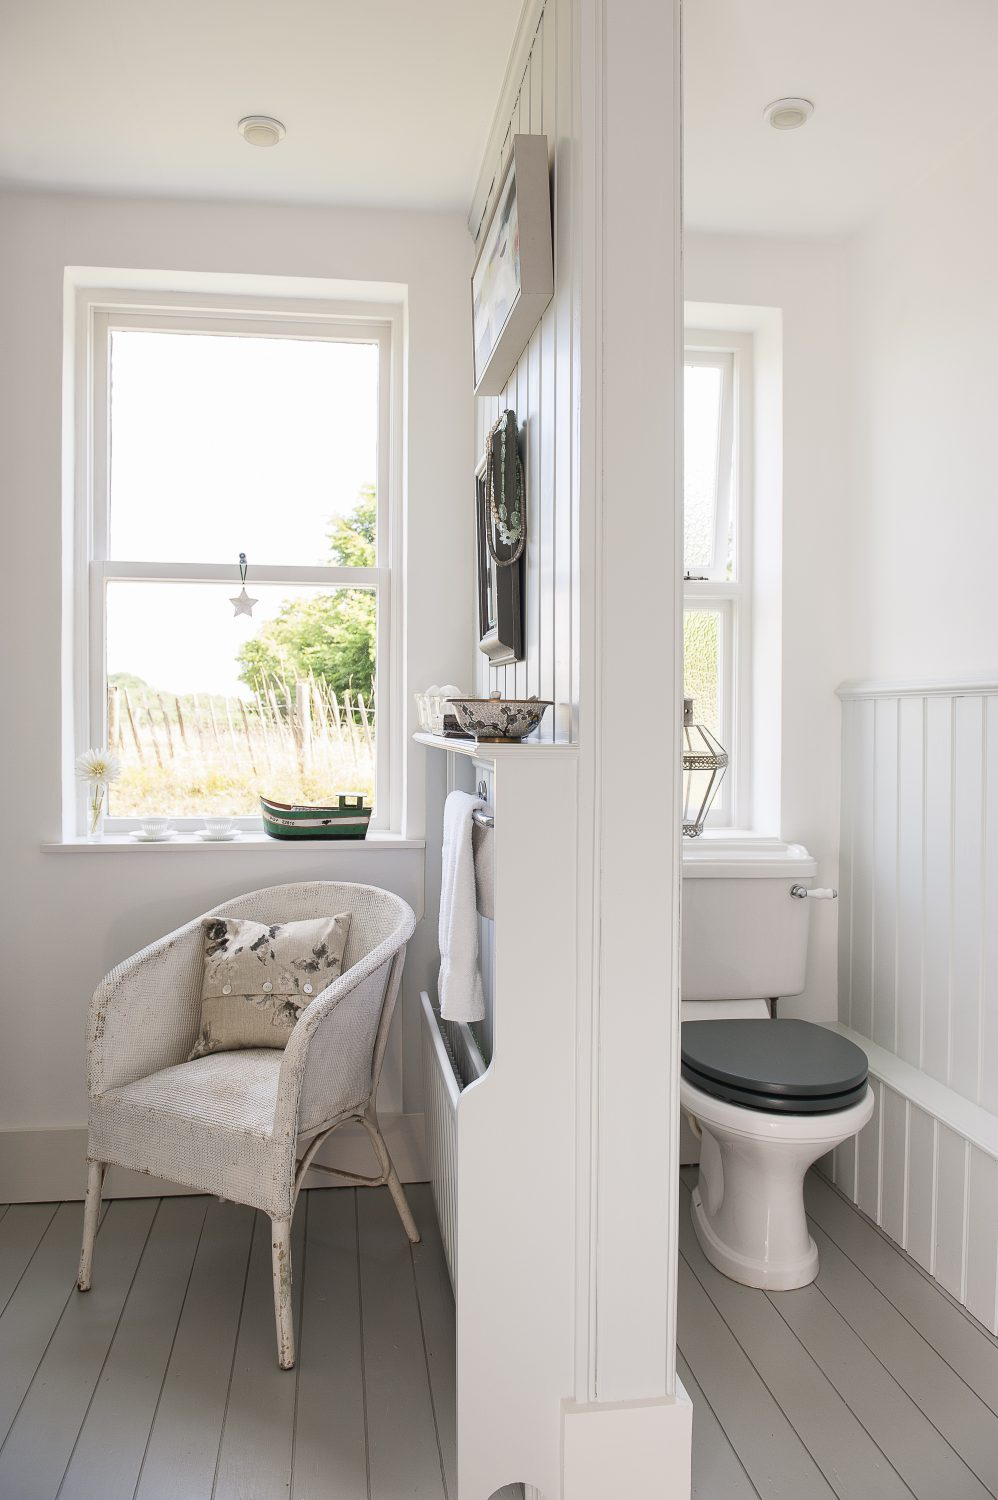 The bathroom features a soft, sea coloured scheme with shells and beach finds arranged on shelves and windowsills. The loo is partitioned away from the bath area, making it separate, but still part of the room